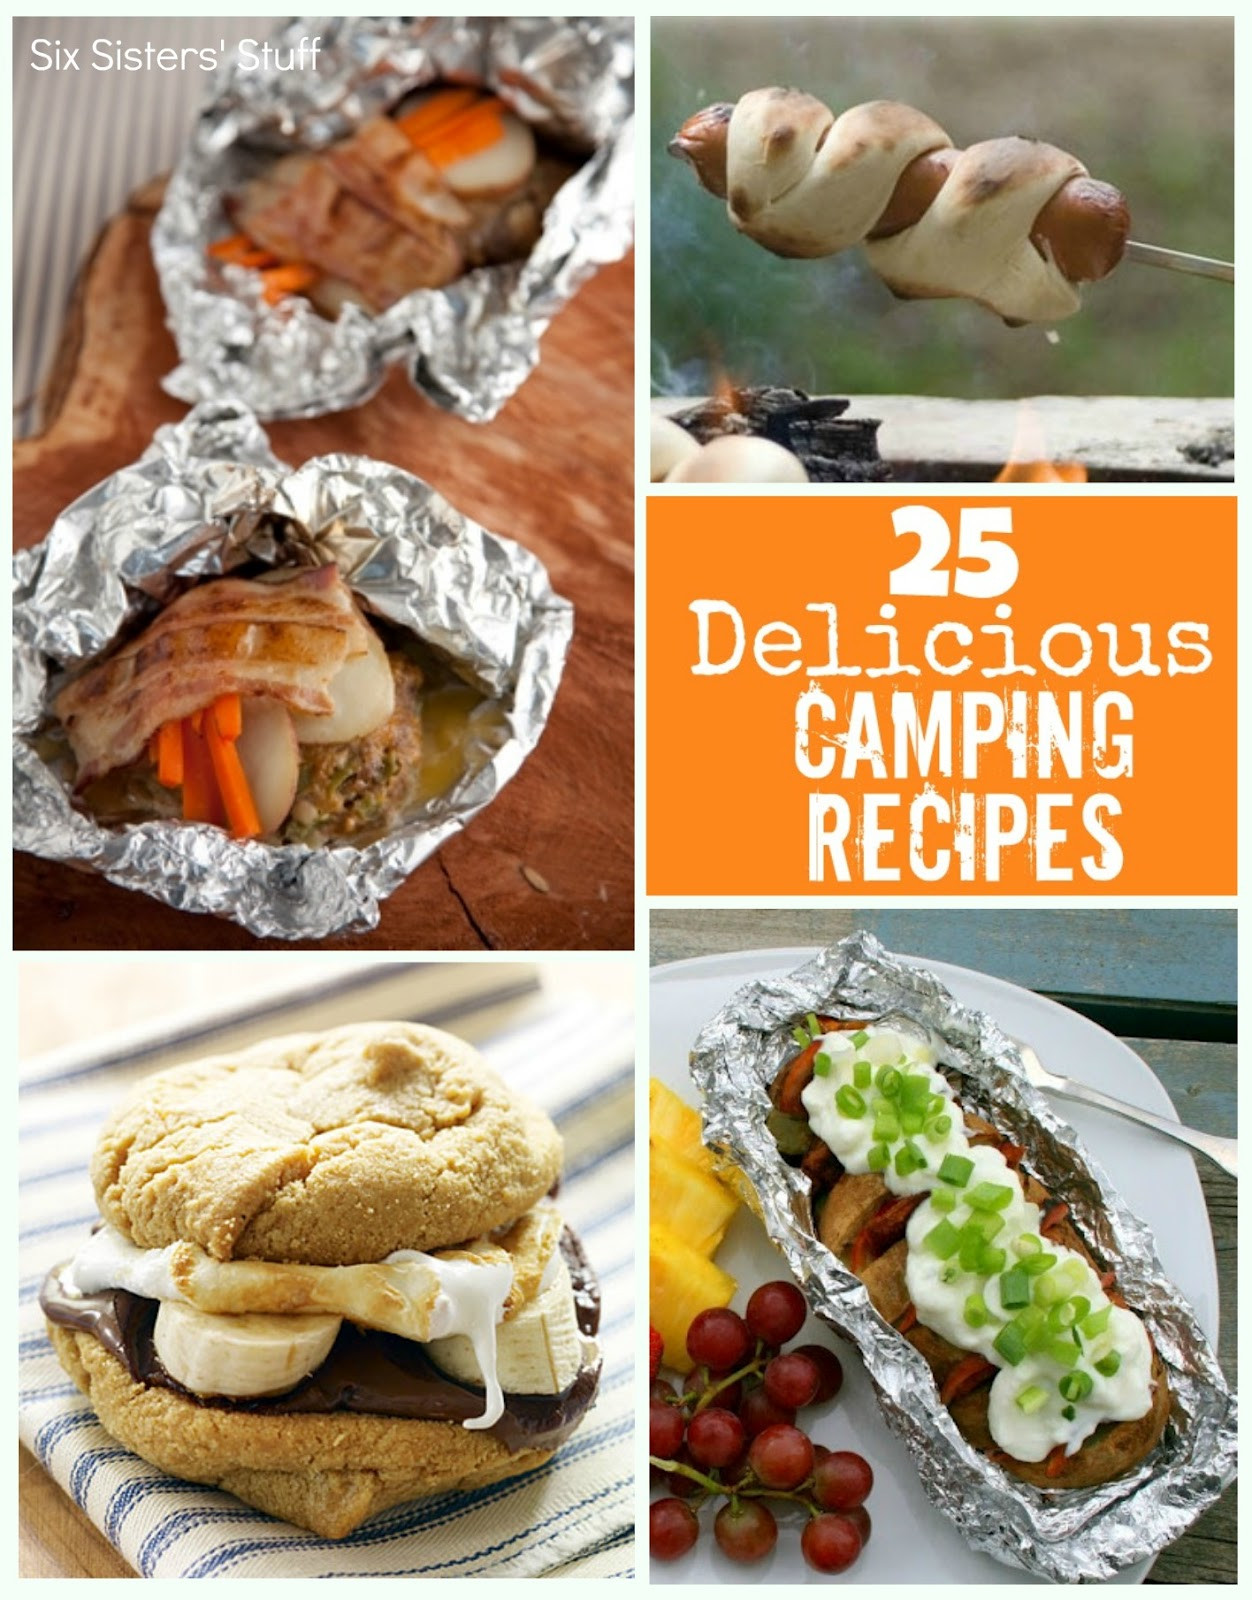 Easy Camping Dinners For Large Groups  25 Delicious Camping Recipes Six Sisters Stuff